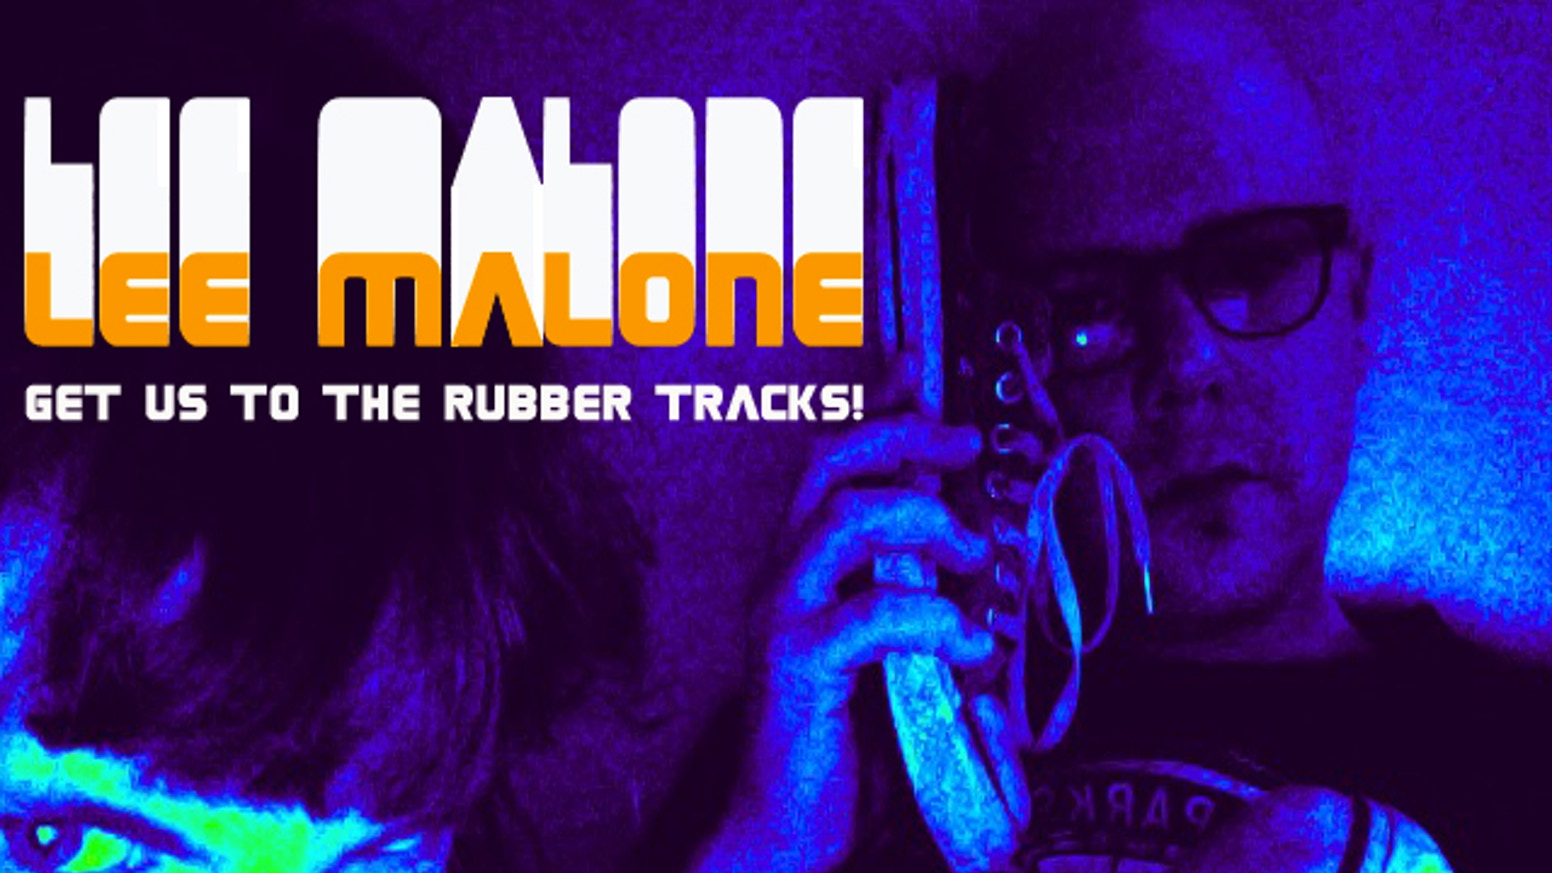 Lee Malone Get Us To The Converse Rubber Track Sessions